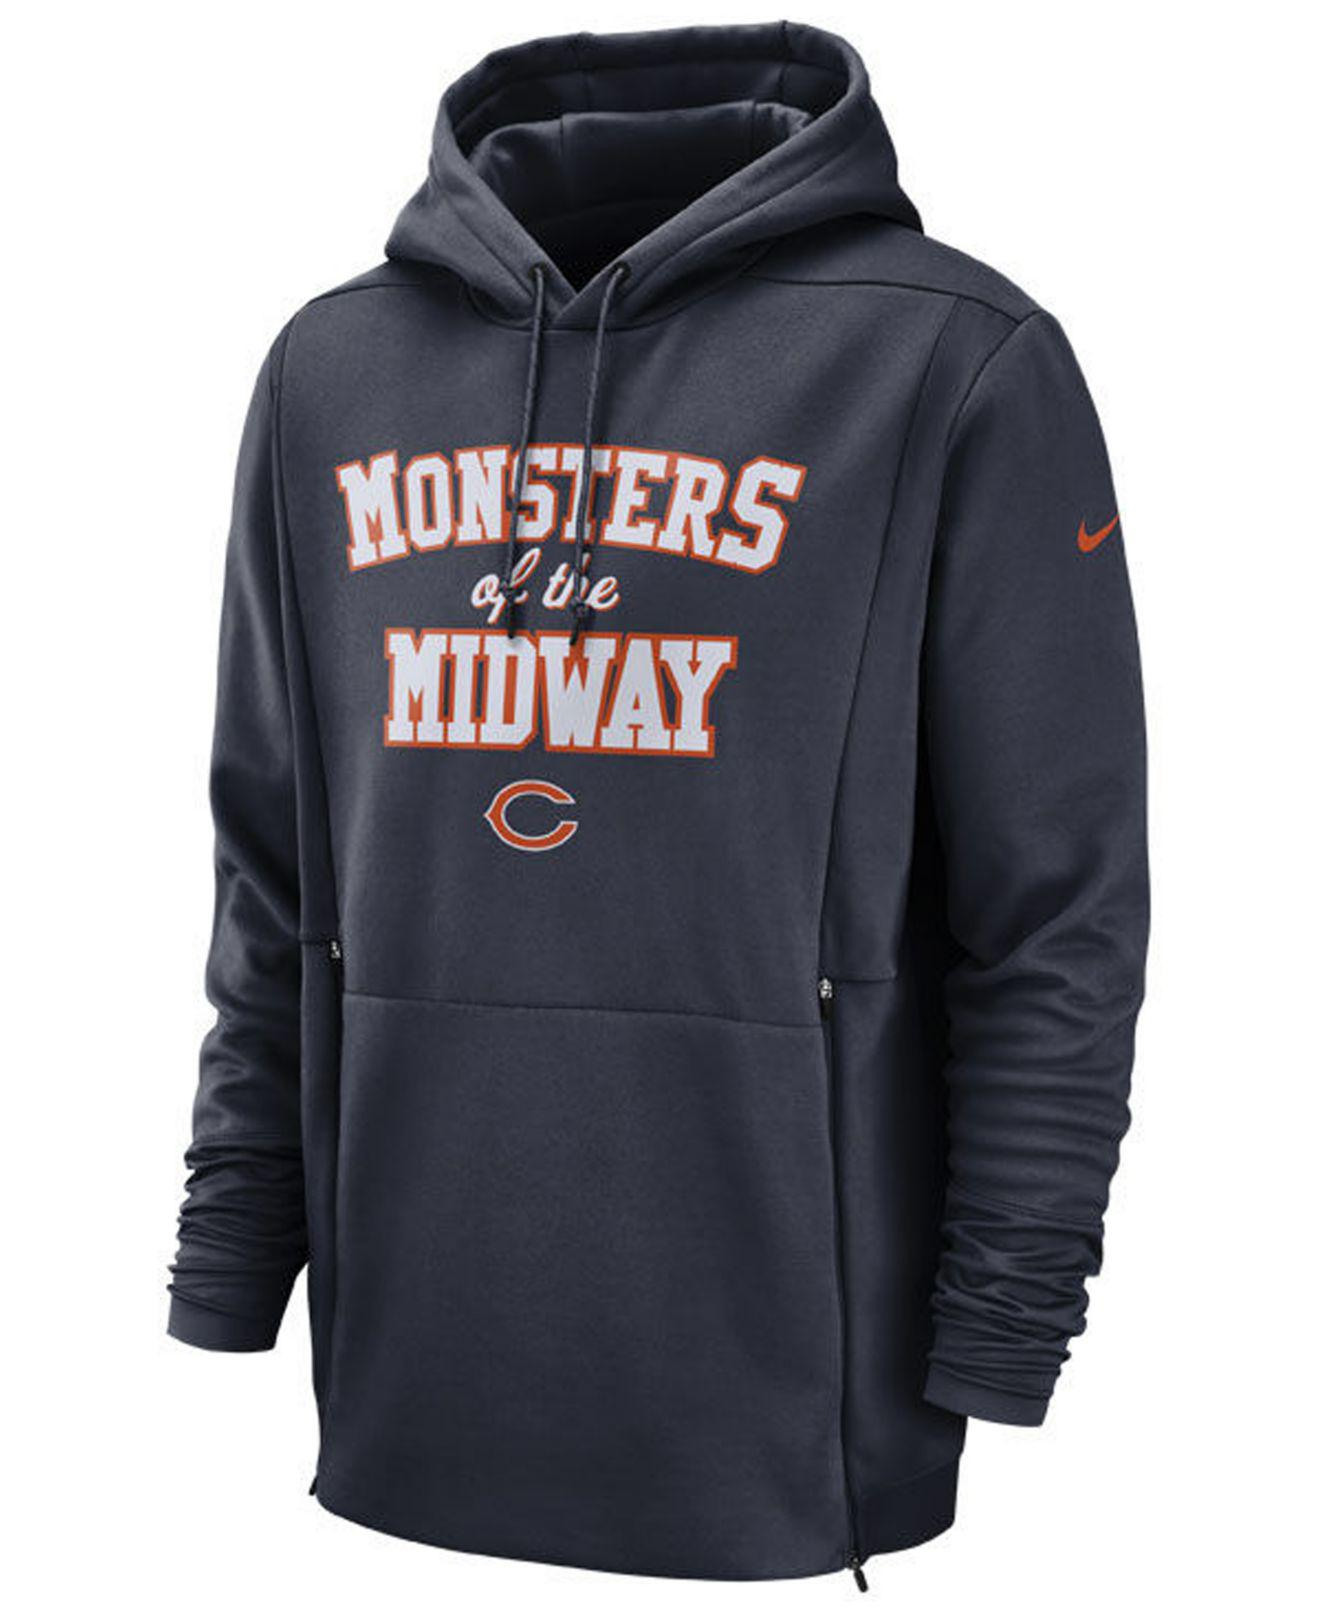 9f78e2ecc Lyst - Nike Chicago Bears Sideline Player Local Therma Hoodie in ...